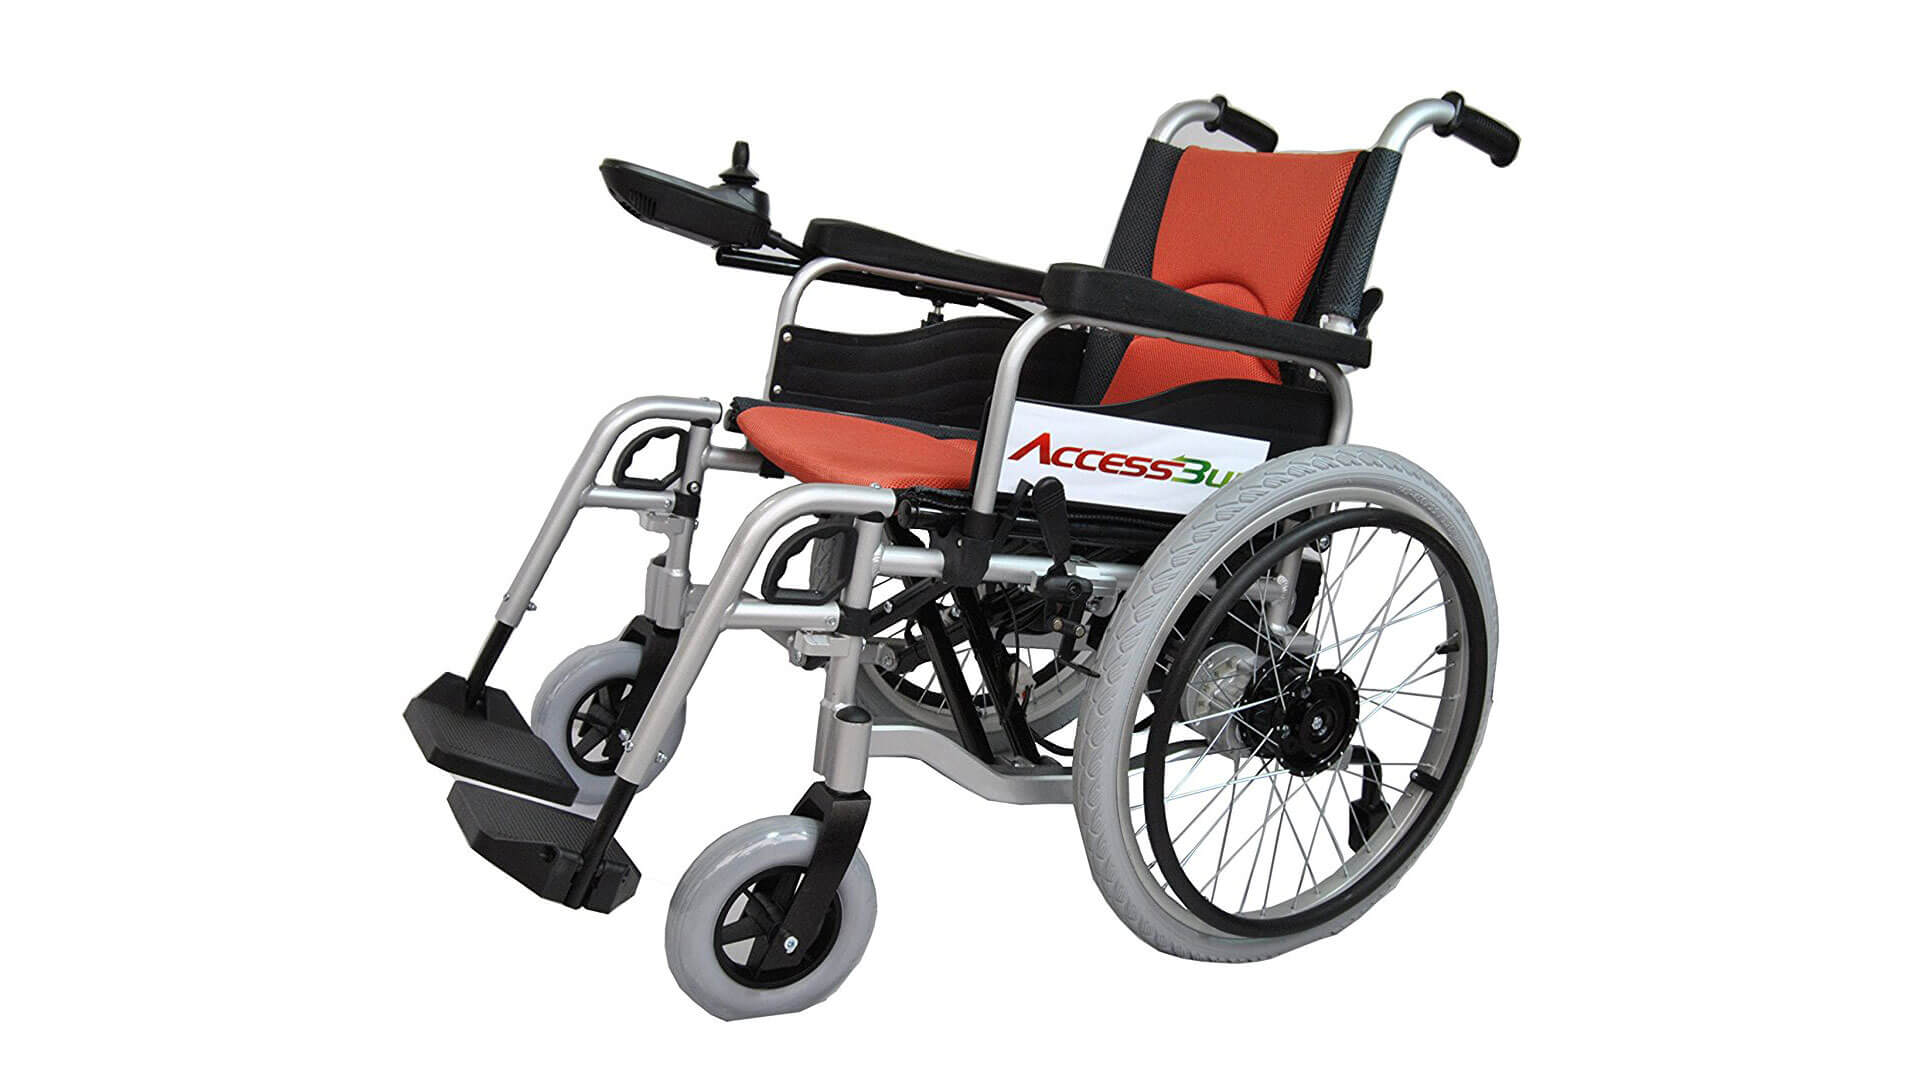 Best wheelchairs for elderly Accessbuy